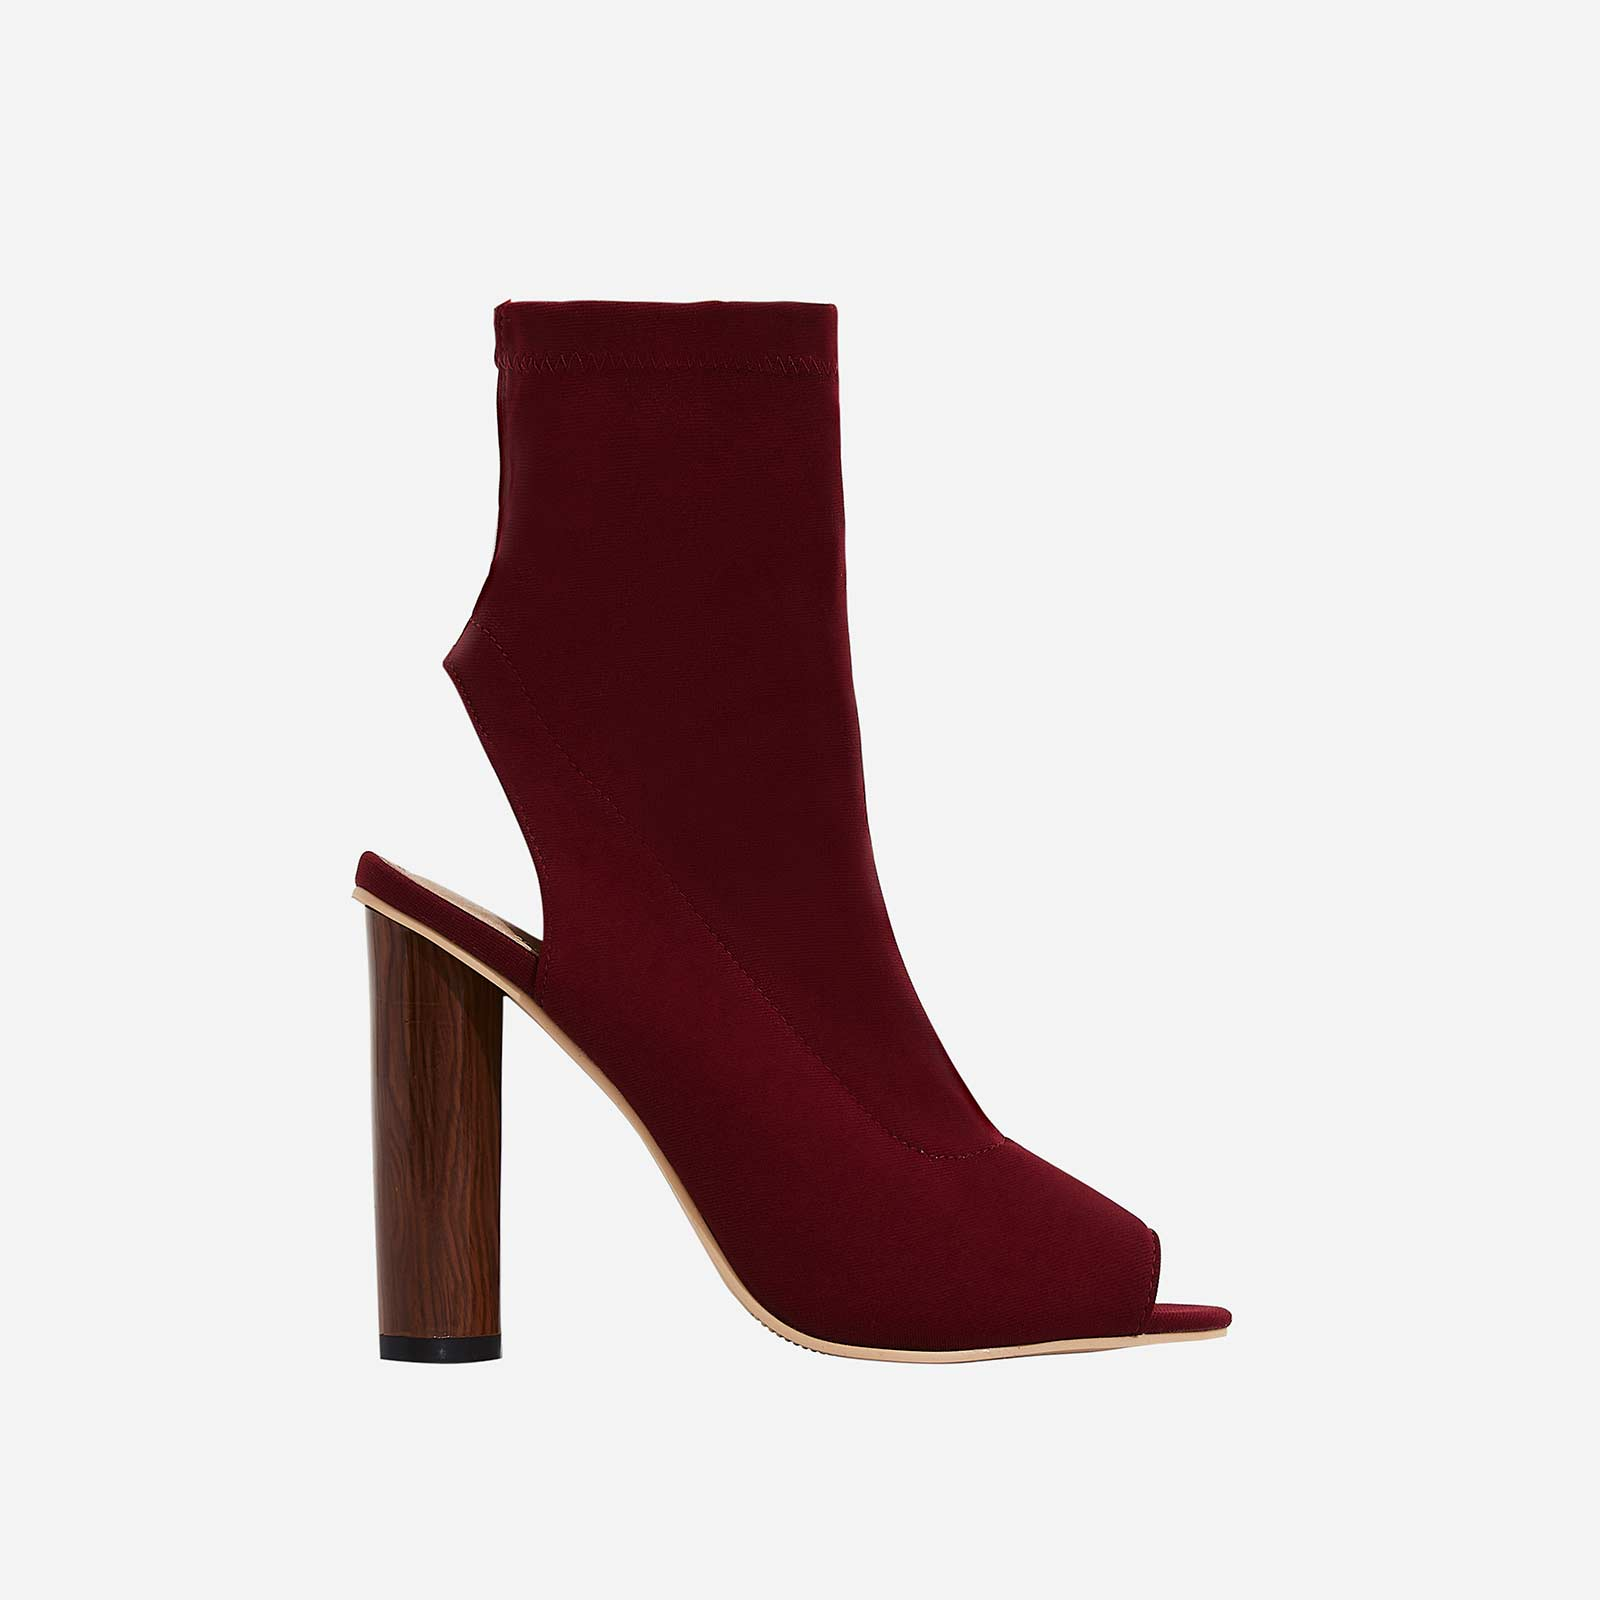 Sylvie Cut Out Peep Toe Ankle Boot In Burgundy Lycra